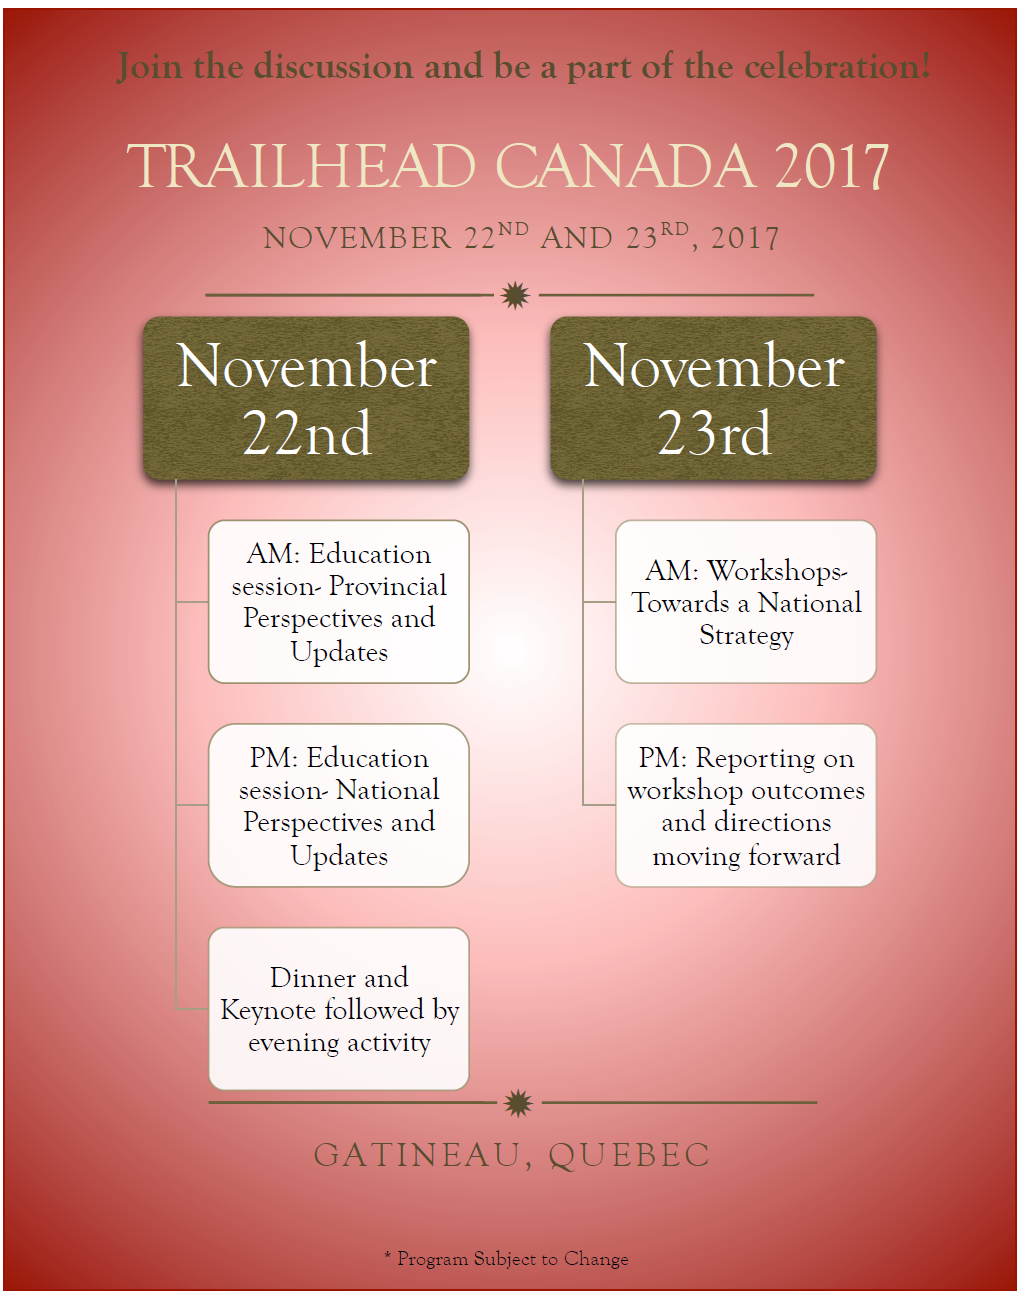 trailhead canada program outline